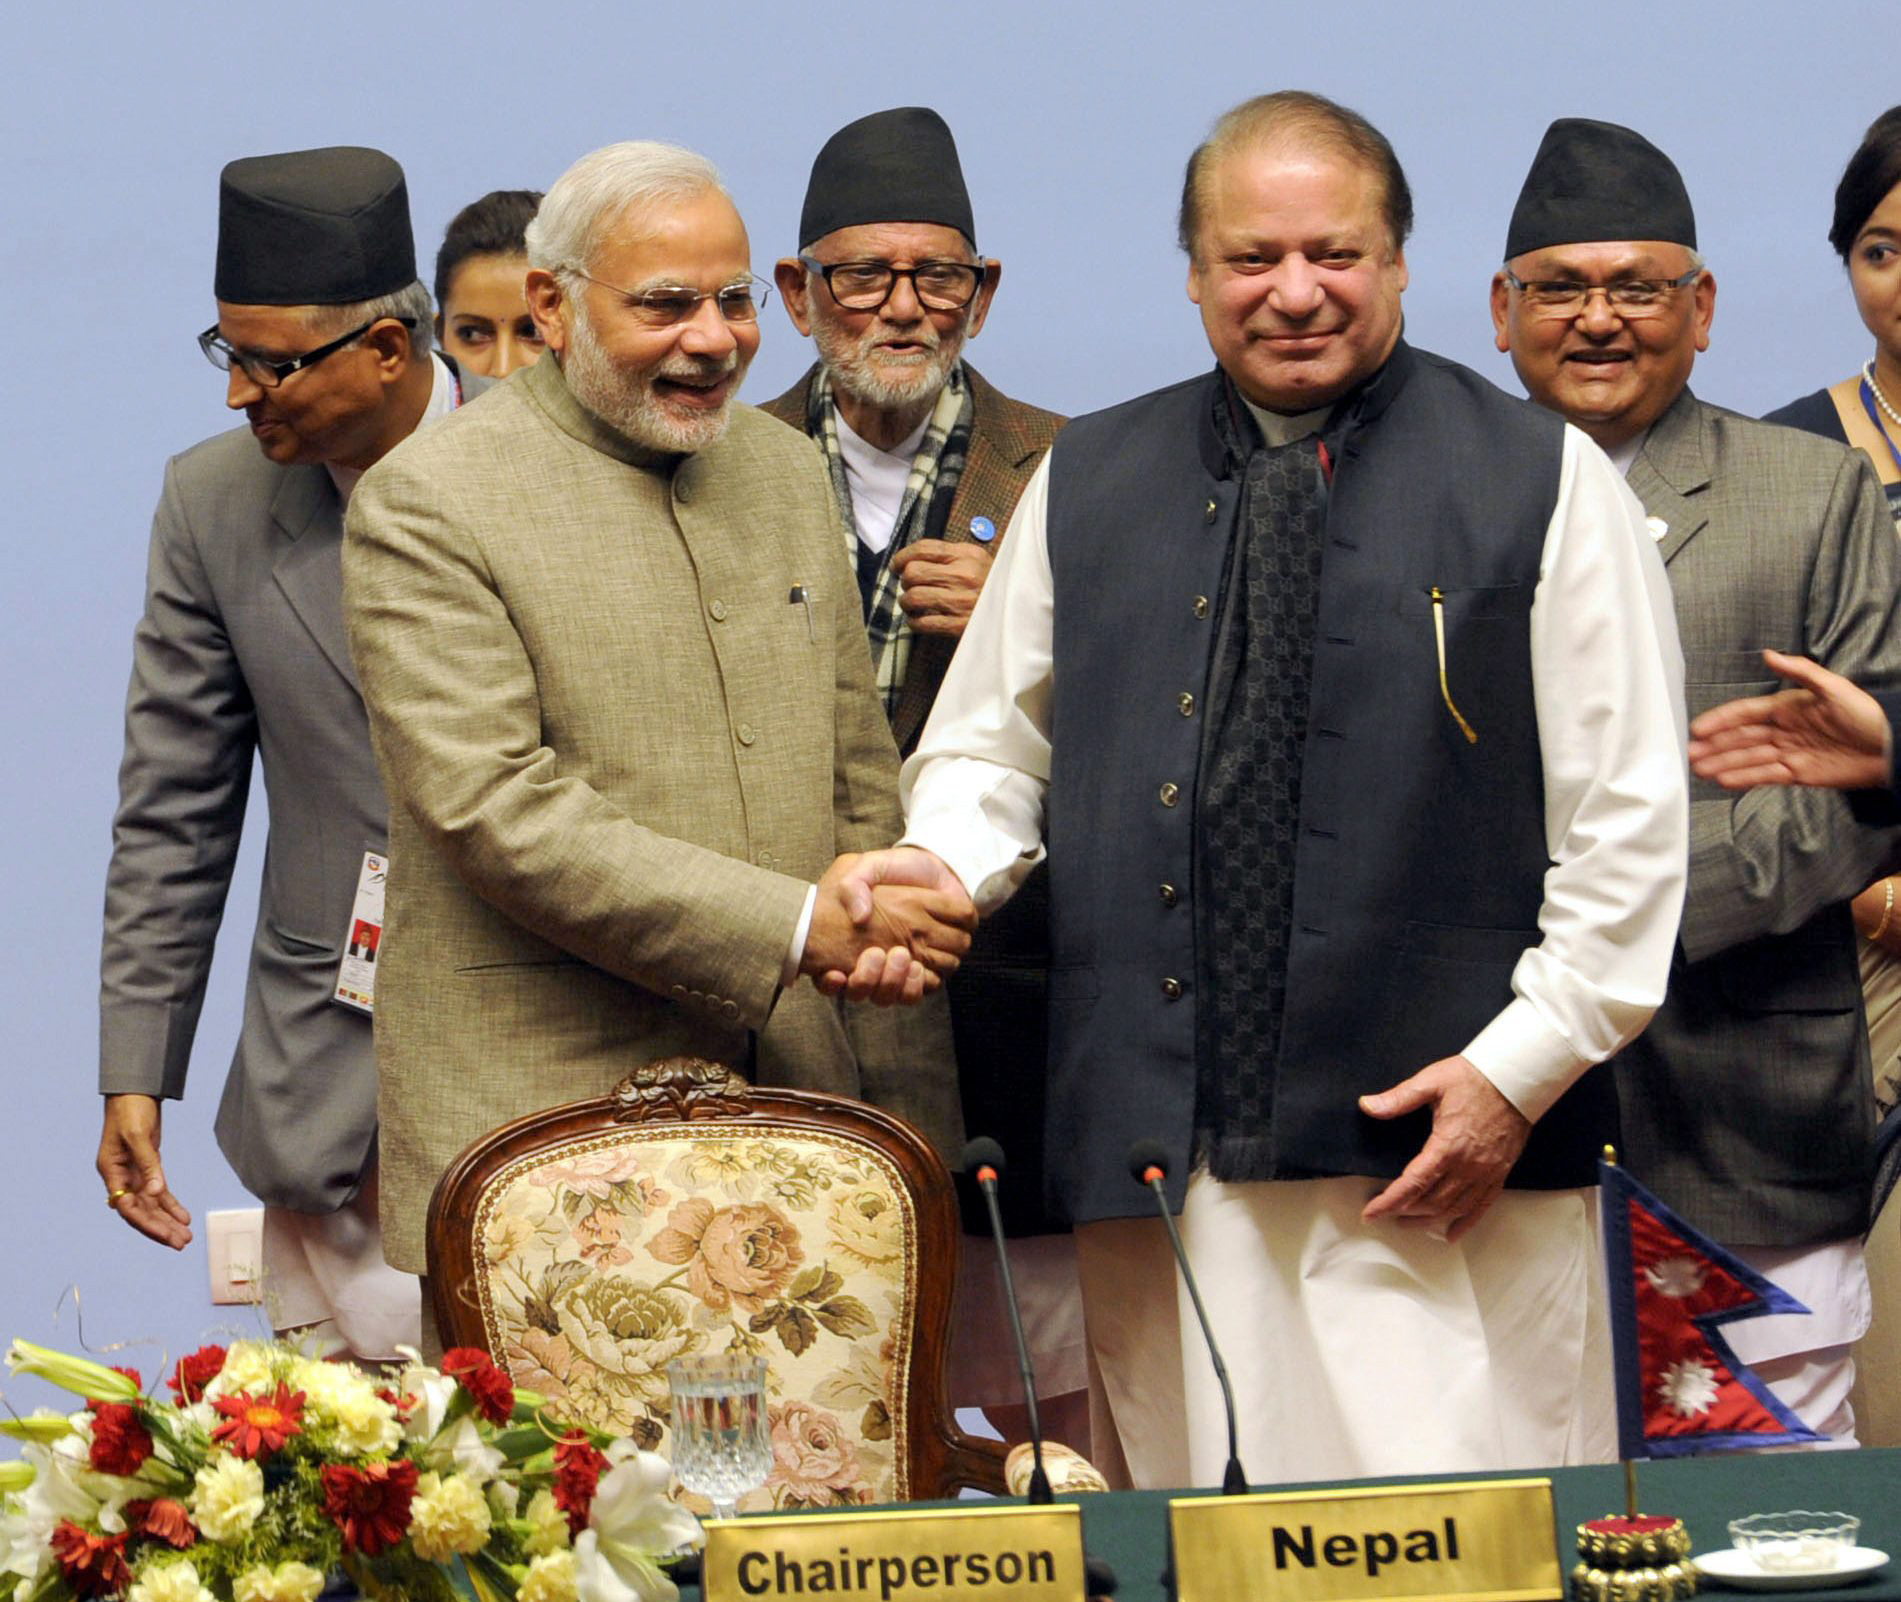 we have taken the decision to start a cricket series between both countries to improve our relations says modi photo afp